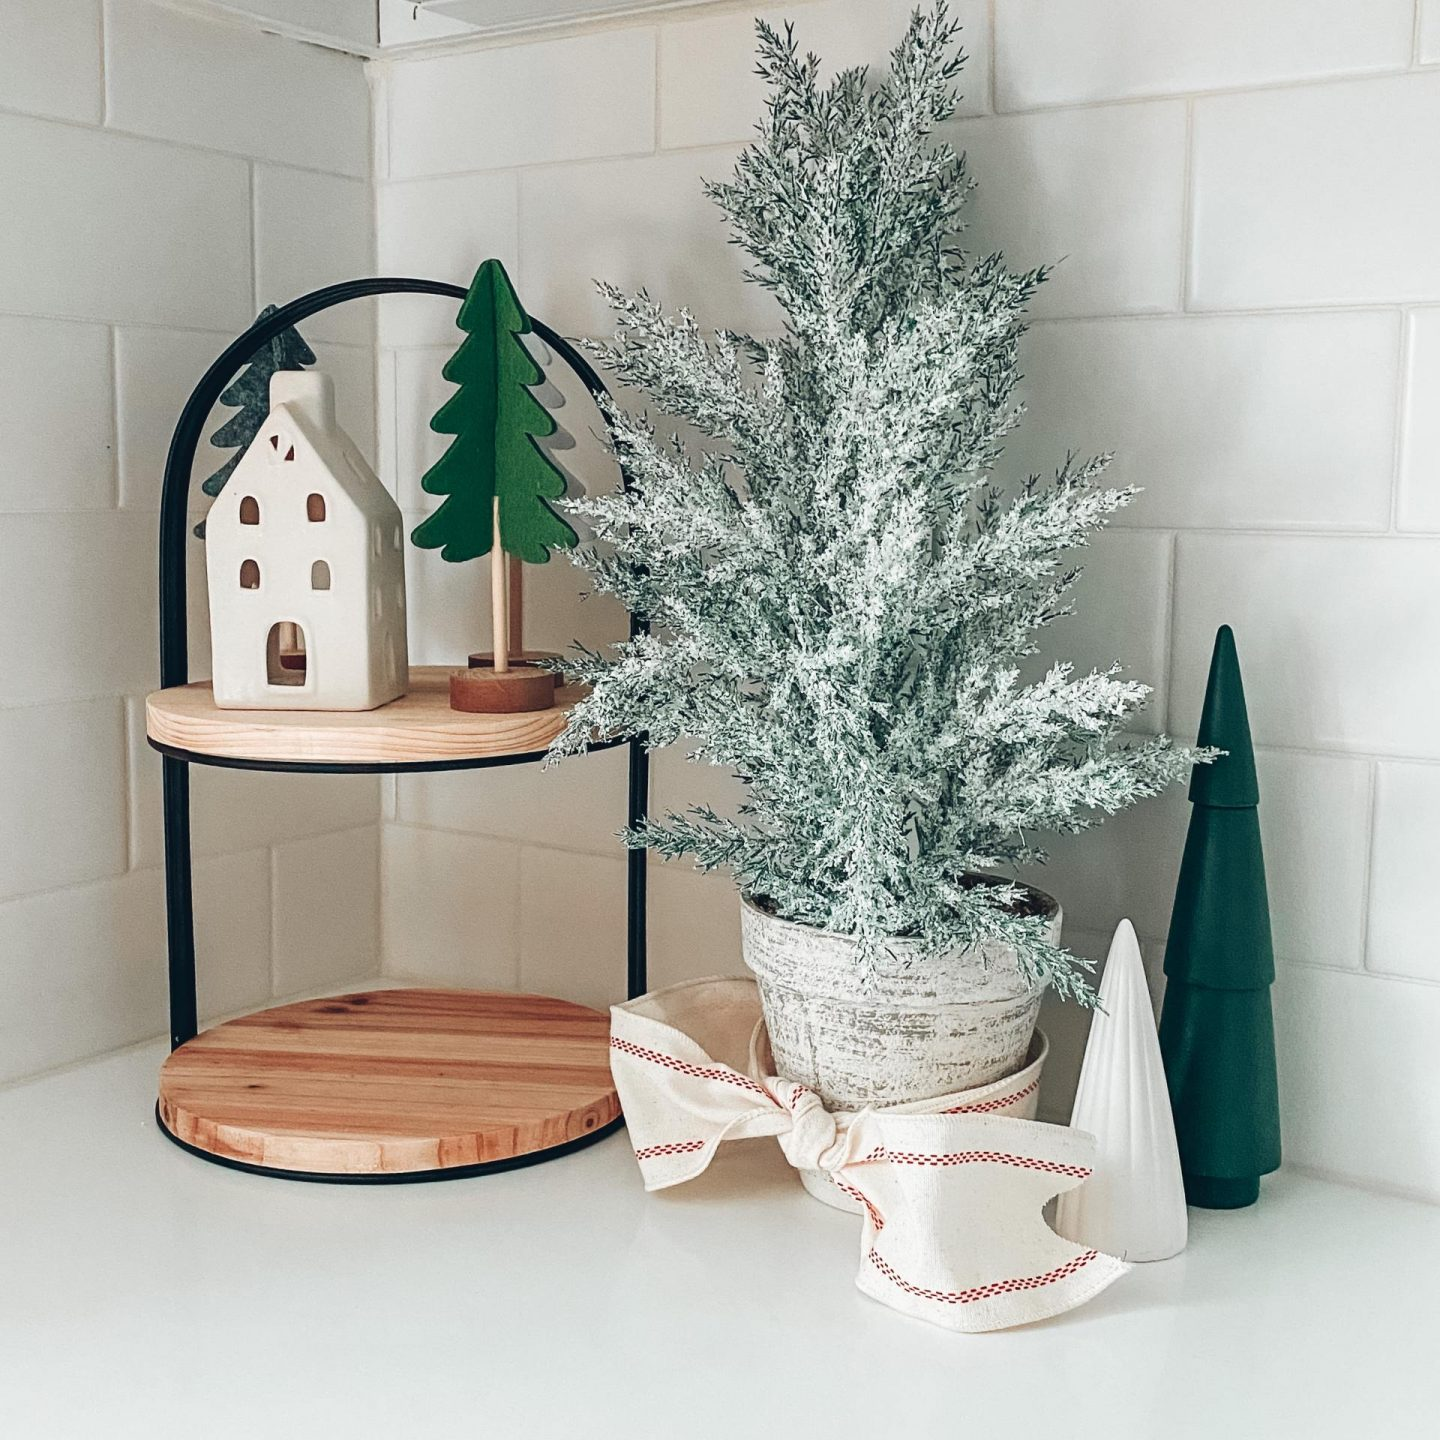 NC blogger Rebecca Lately is sharing her 2020 Christmas decorations! If you need inspiration, check this out!